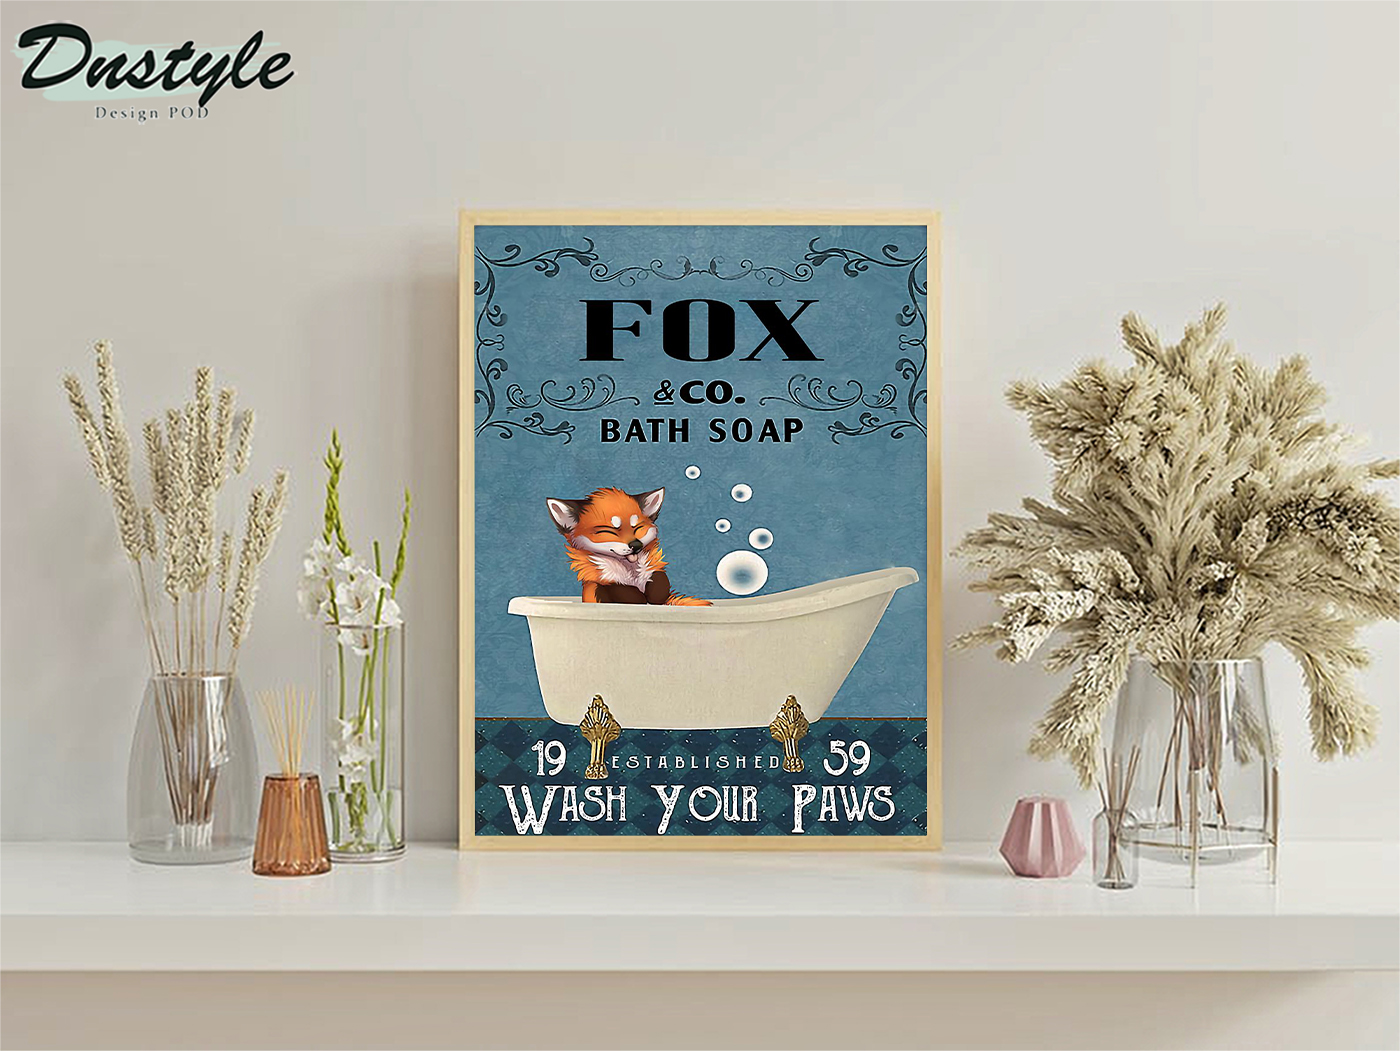 Fox co bath soap wash your paws poster